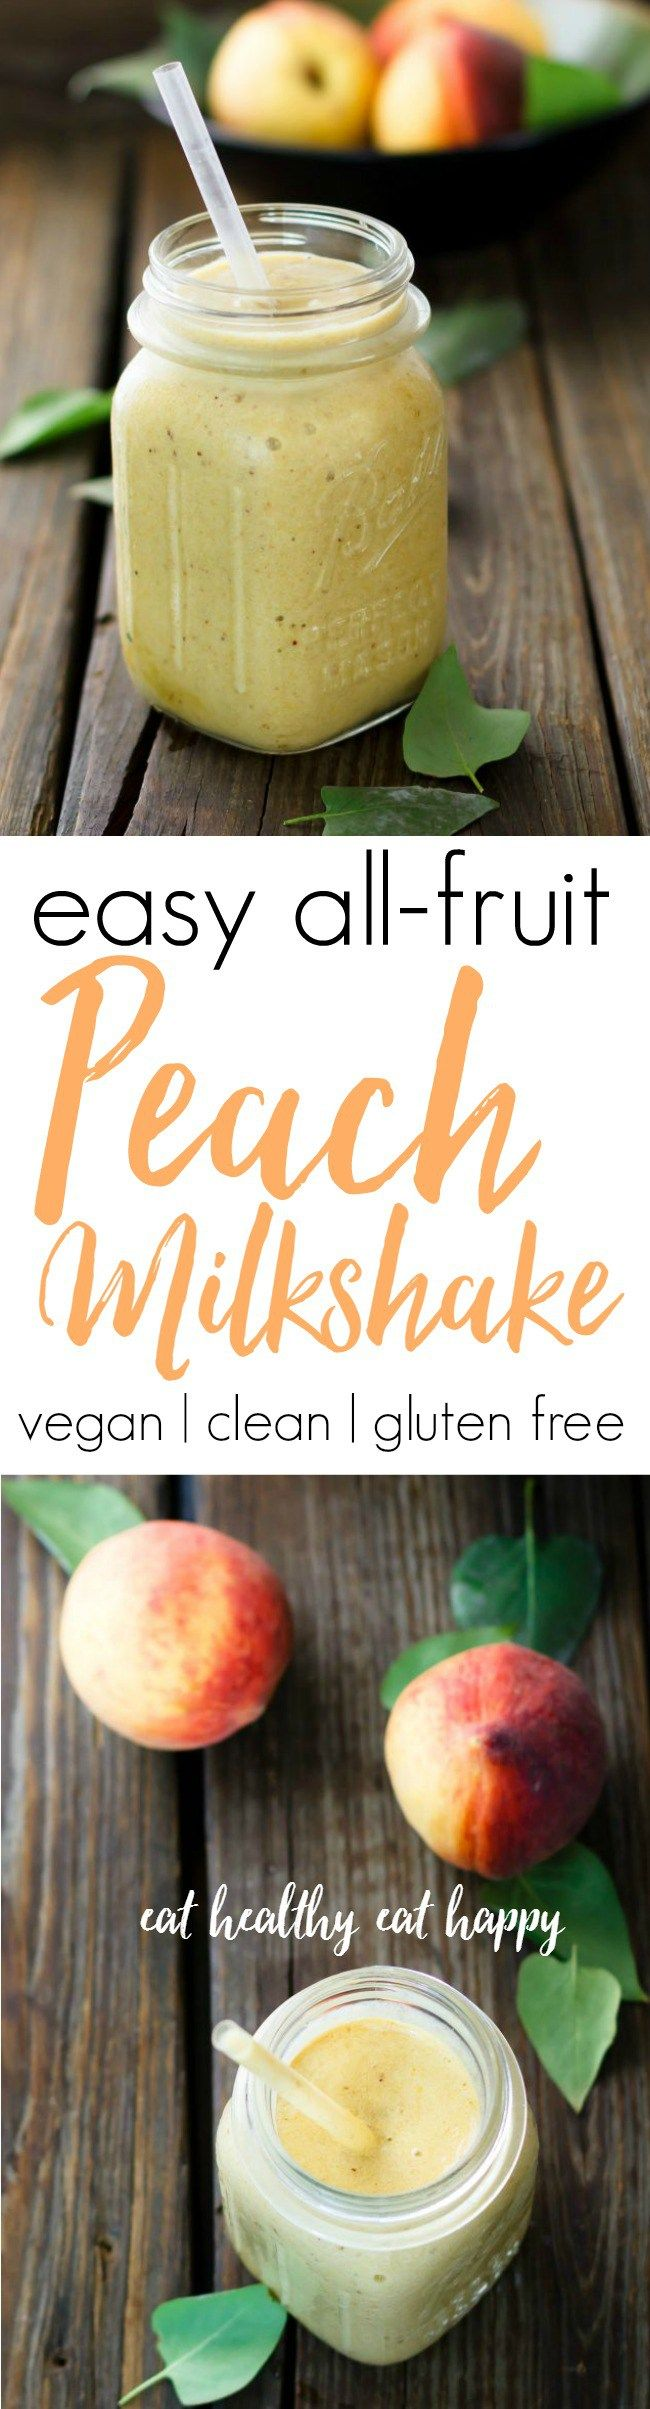 This peach milkshake tastes like an ice cream shake, but it's made from frozen fruit! Vegan, clean, gluten free.